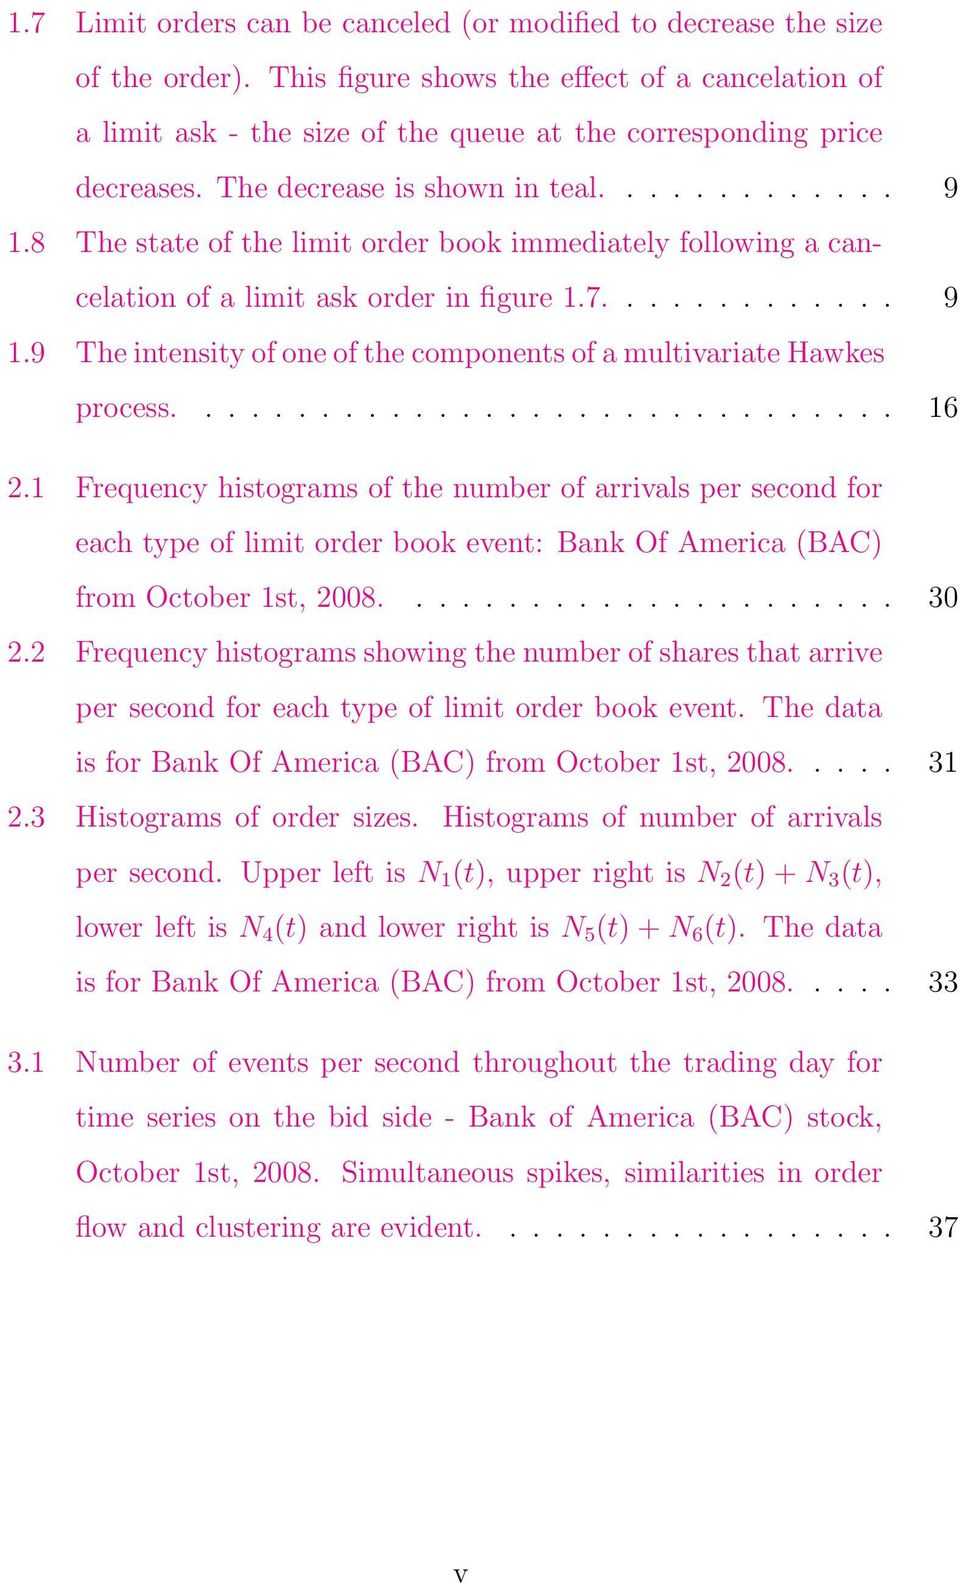 8 The state of the limit order book immediately following a cancelation of a limit ask order in figure 1.7............. 9 1.9 The intensity of one of the components of a multivariate Hawkes process.